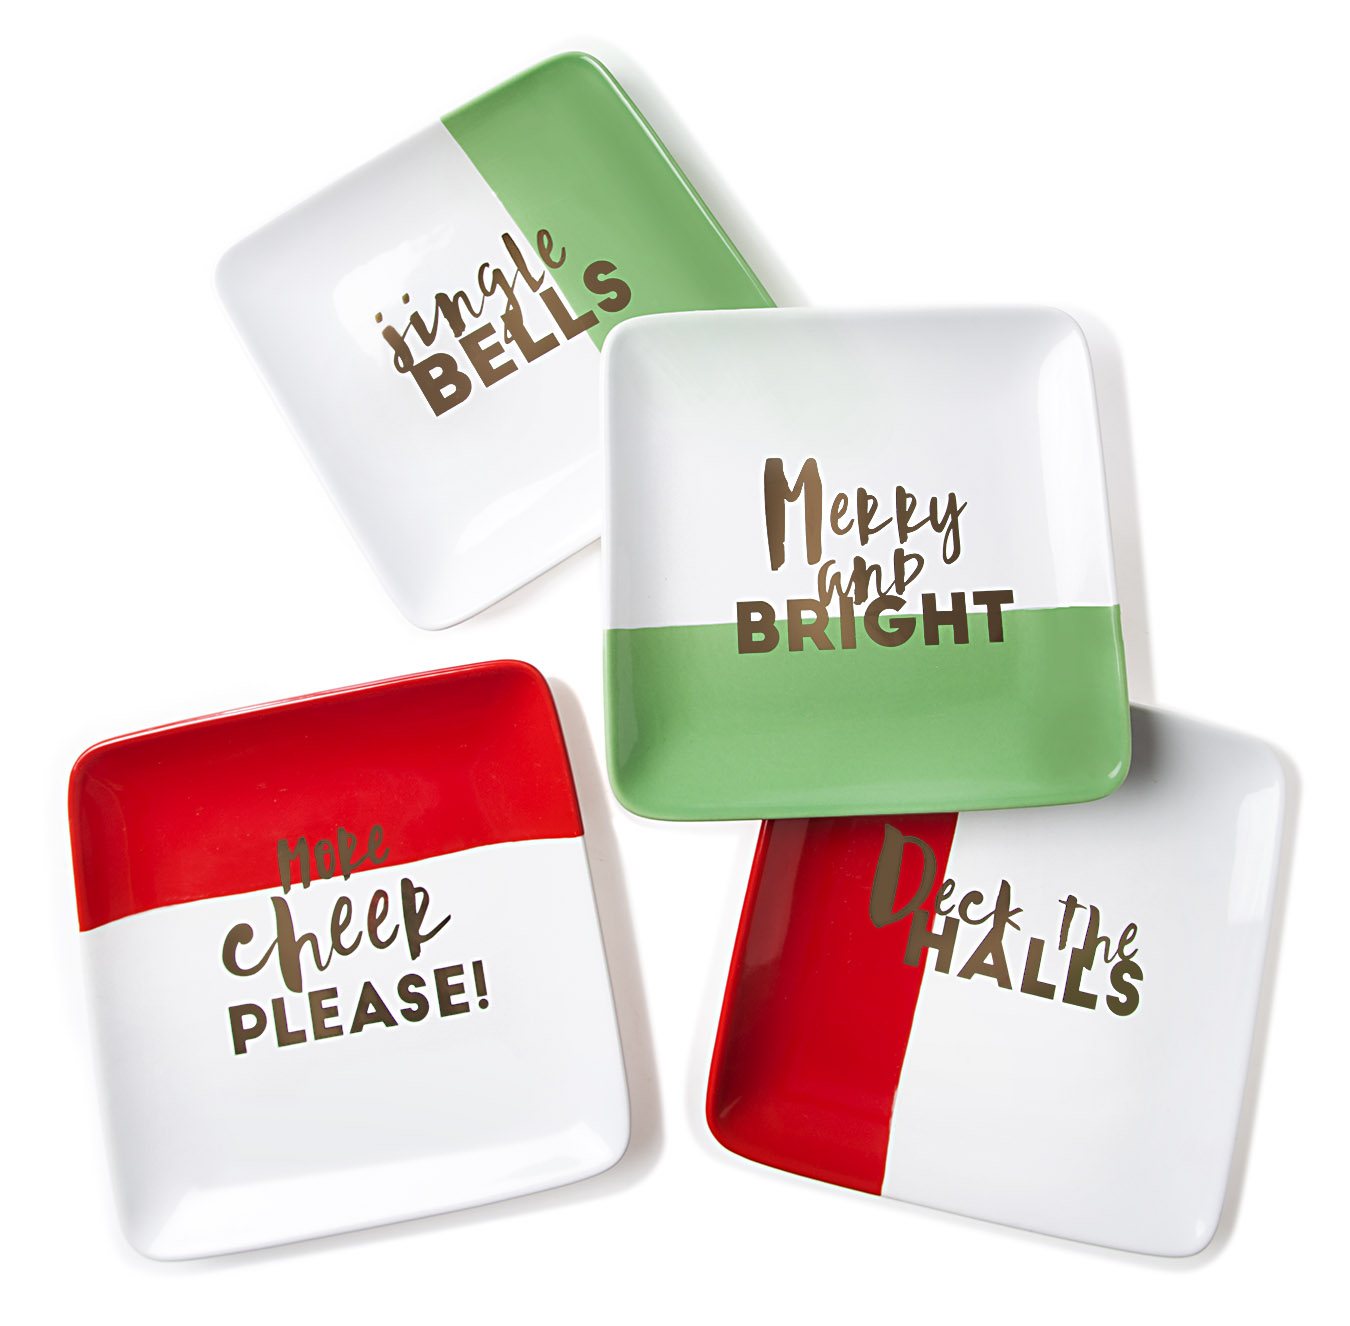 FORAGJA17_merry_bright_plates_lowres.jpg